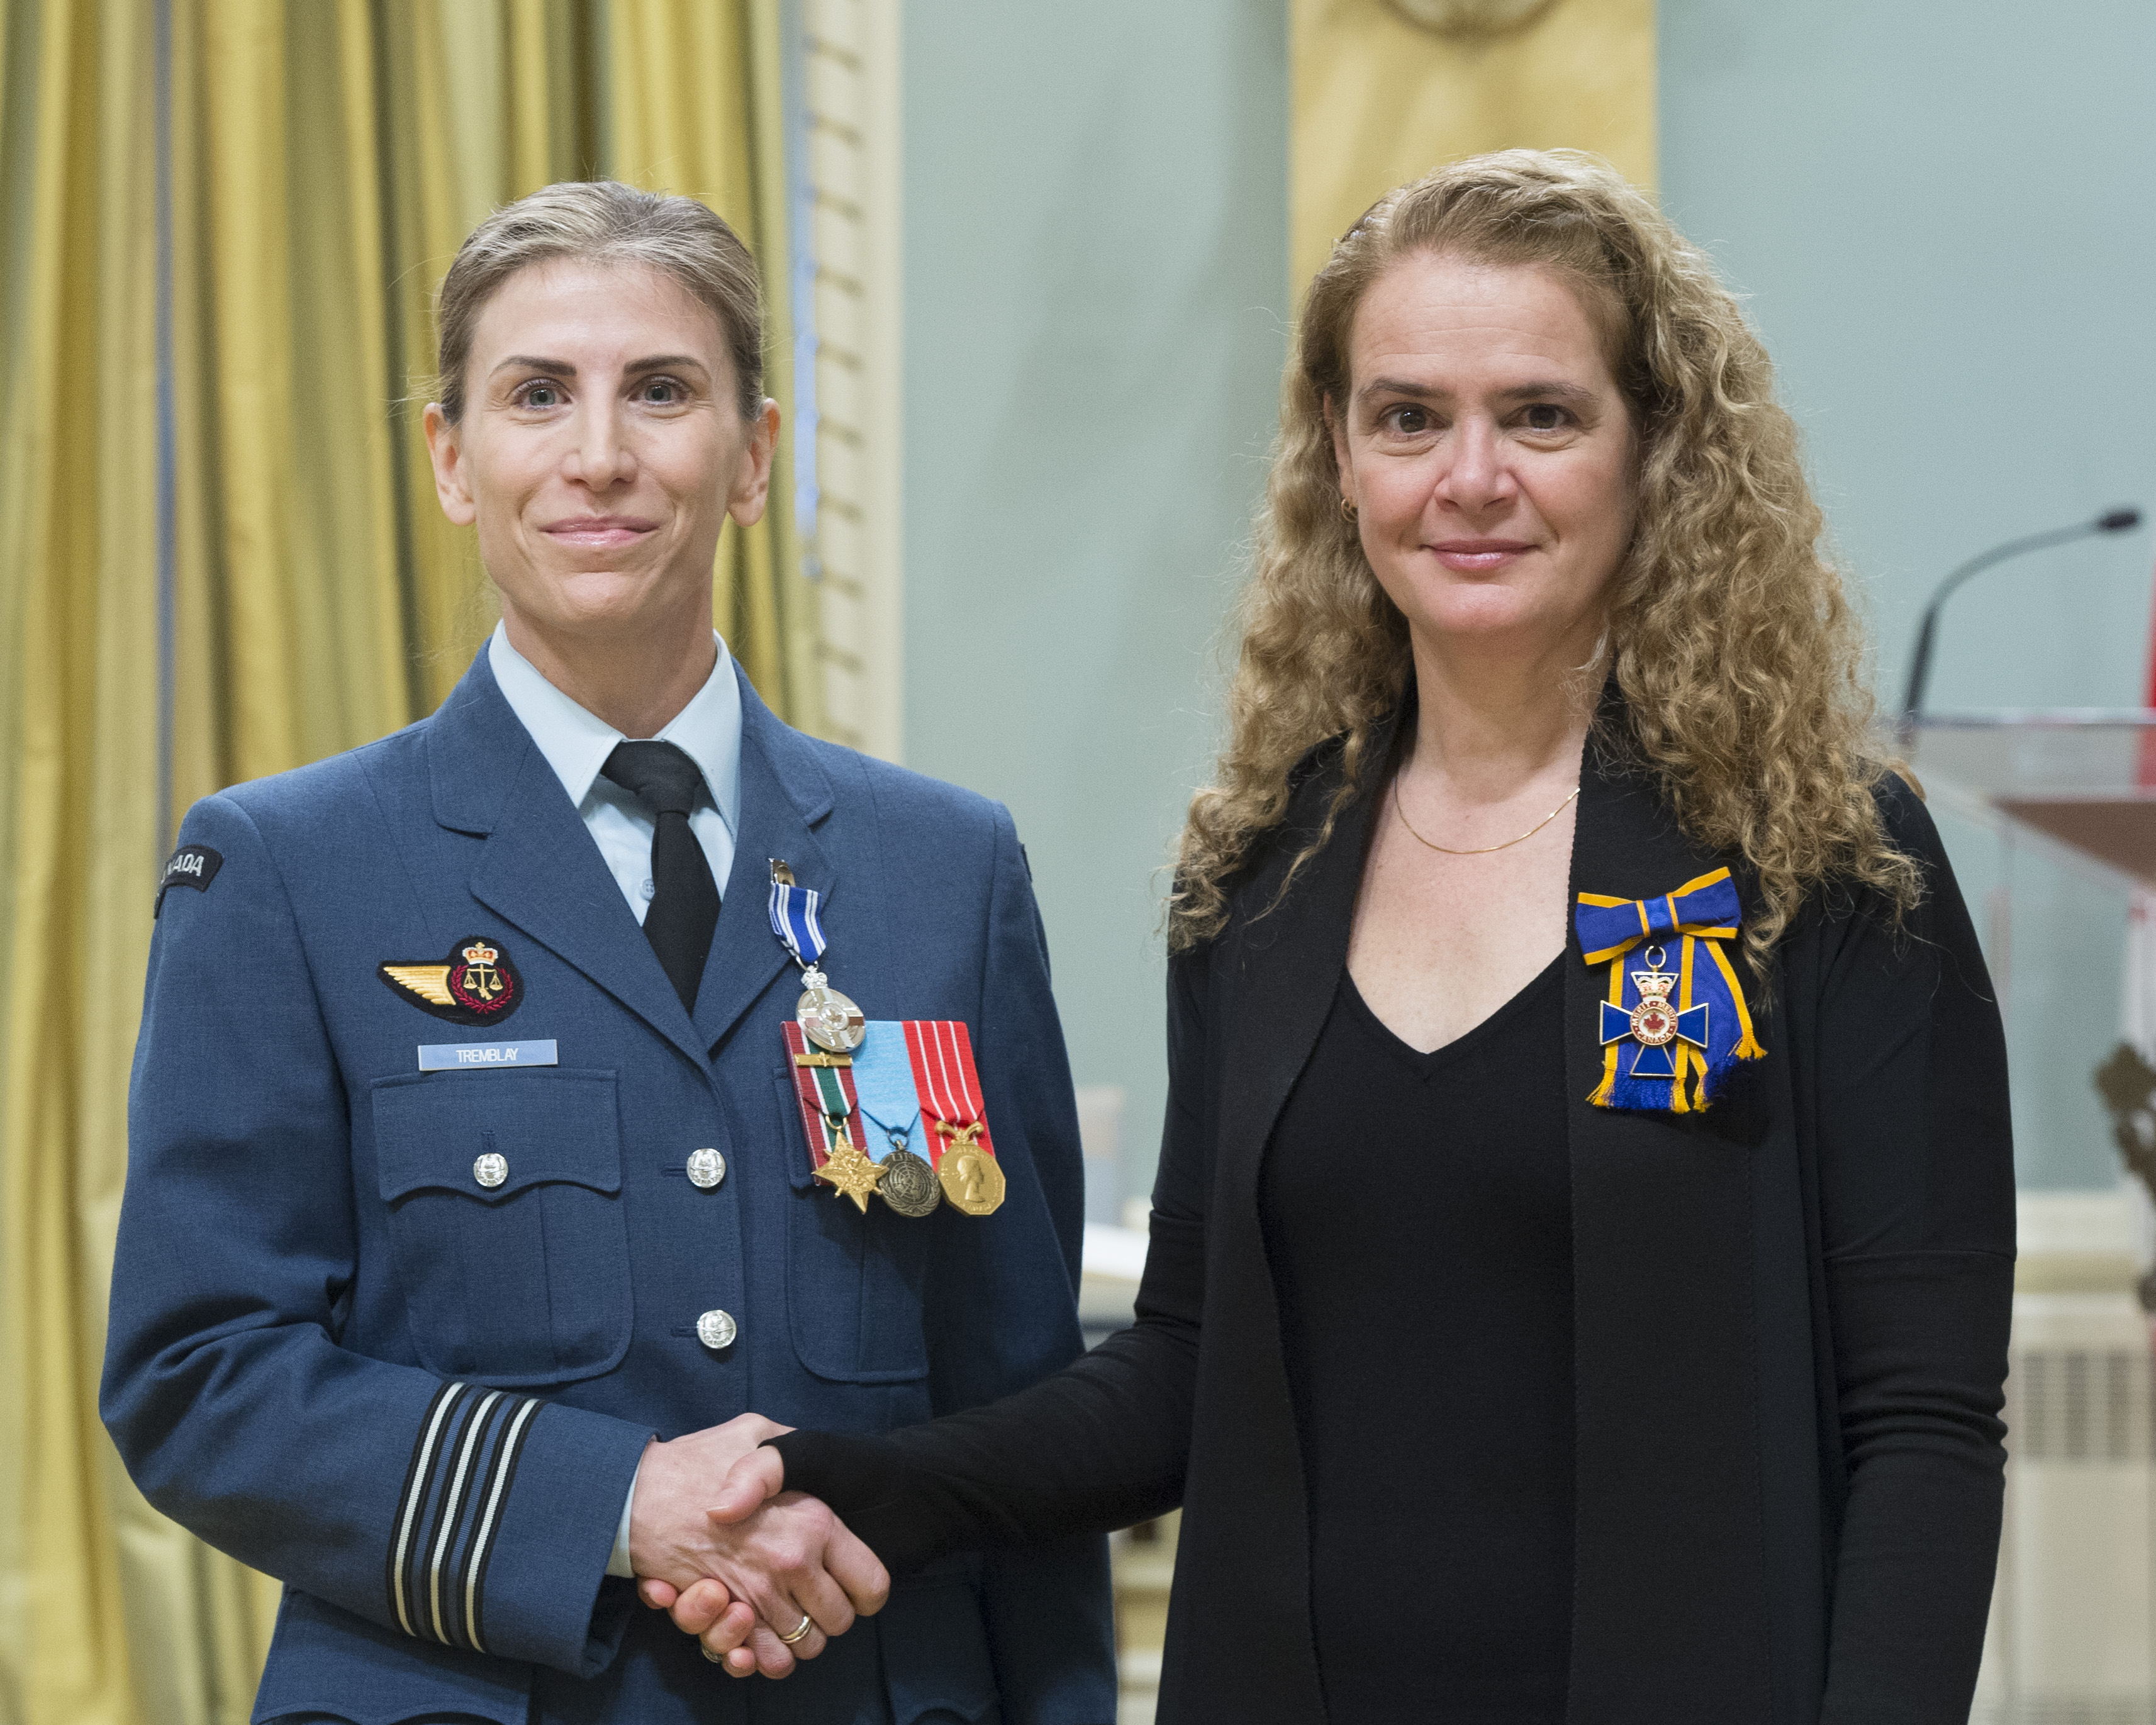 Lieutenant-Colonel Tammy Tremblay receives the Meritorious Service Medal (Military Division) from Governor General and Commander-in-Chief of Canada Julie Payette on February 28, 2018. PHOTO: Sergeant Johanie Maheu, OSGG, GG05-2018-0066-050